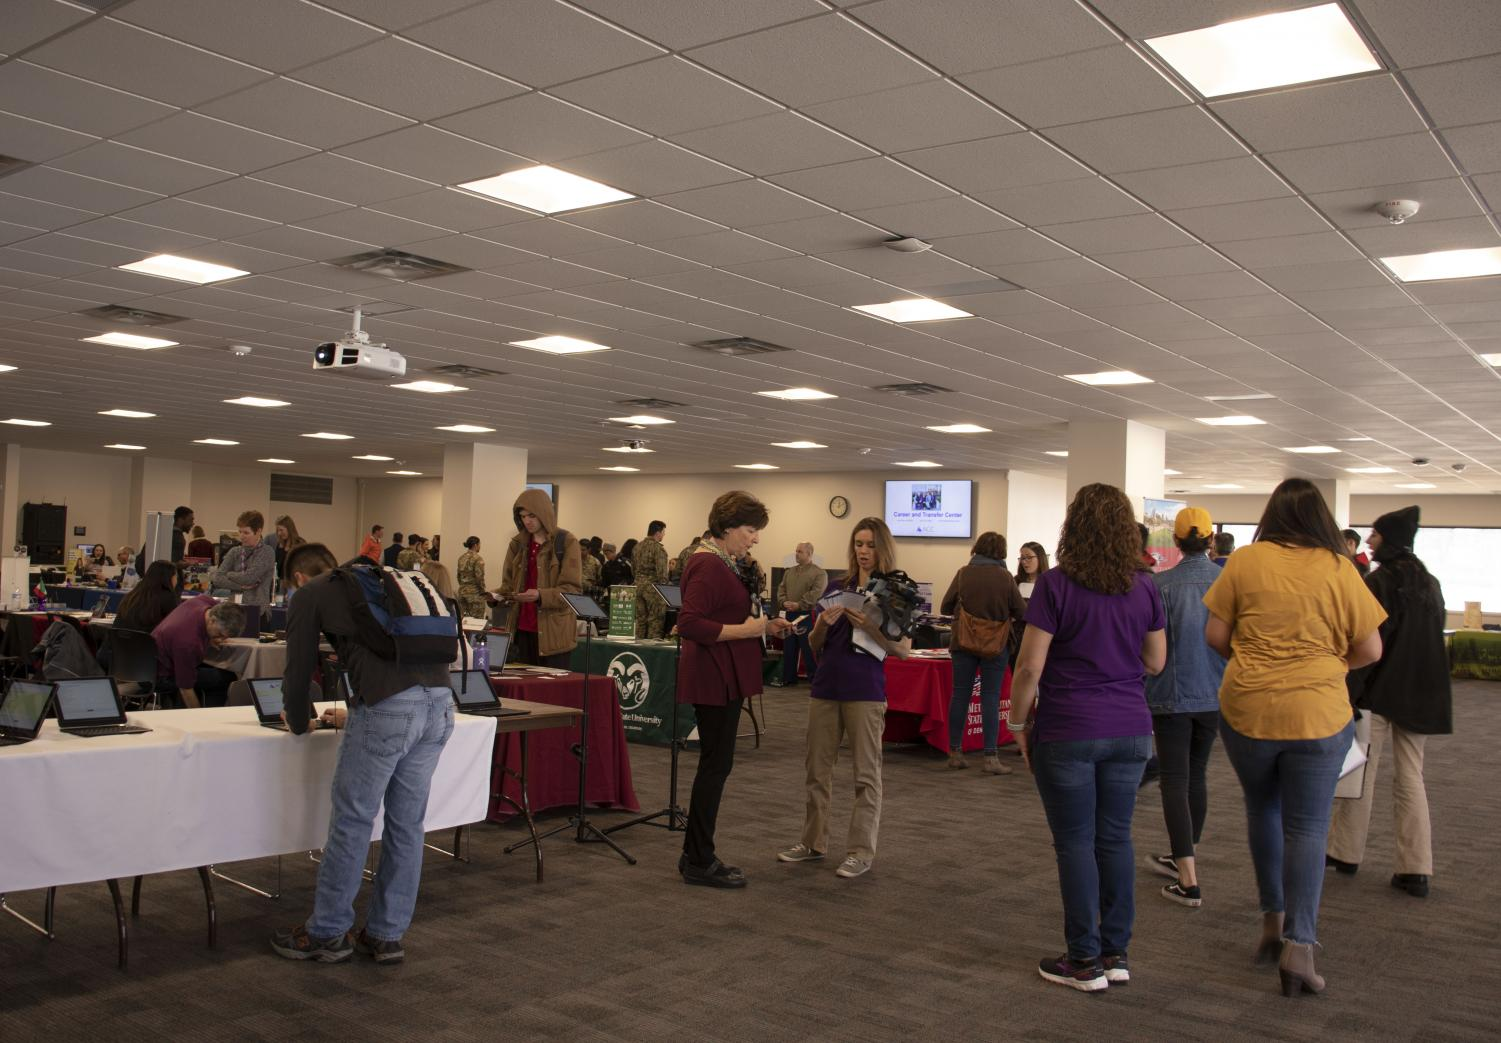 ACC students and staff gather at the Spring Transfer Fair to talk with transfer advisors, Tuesday, Feb 26, 2019. Local and National four-year universities to collect information about transfer options.